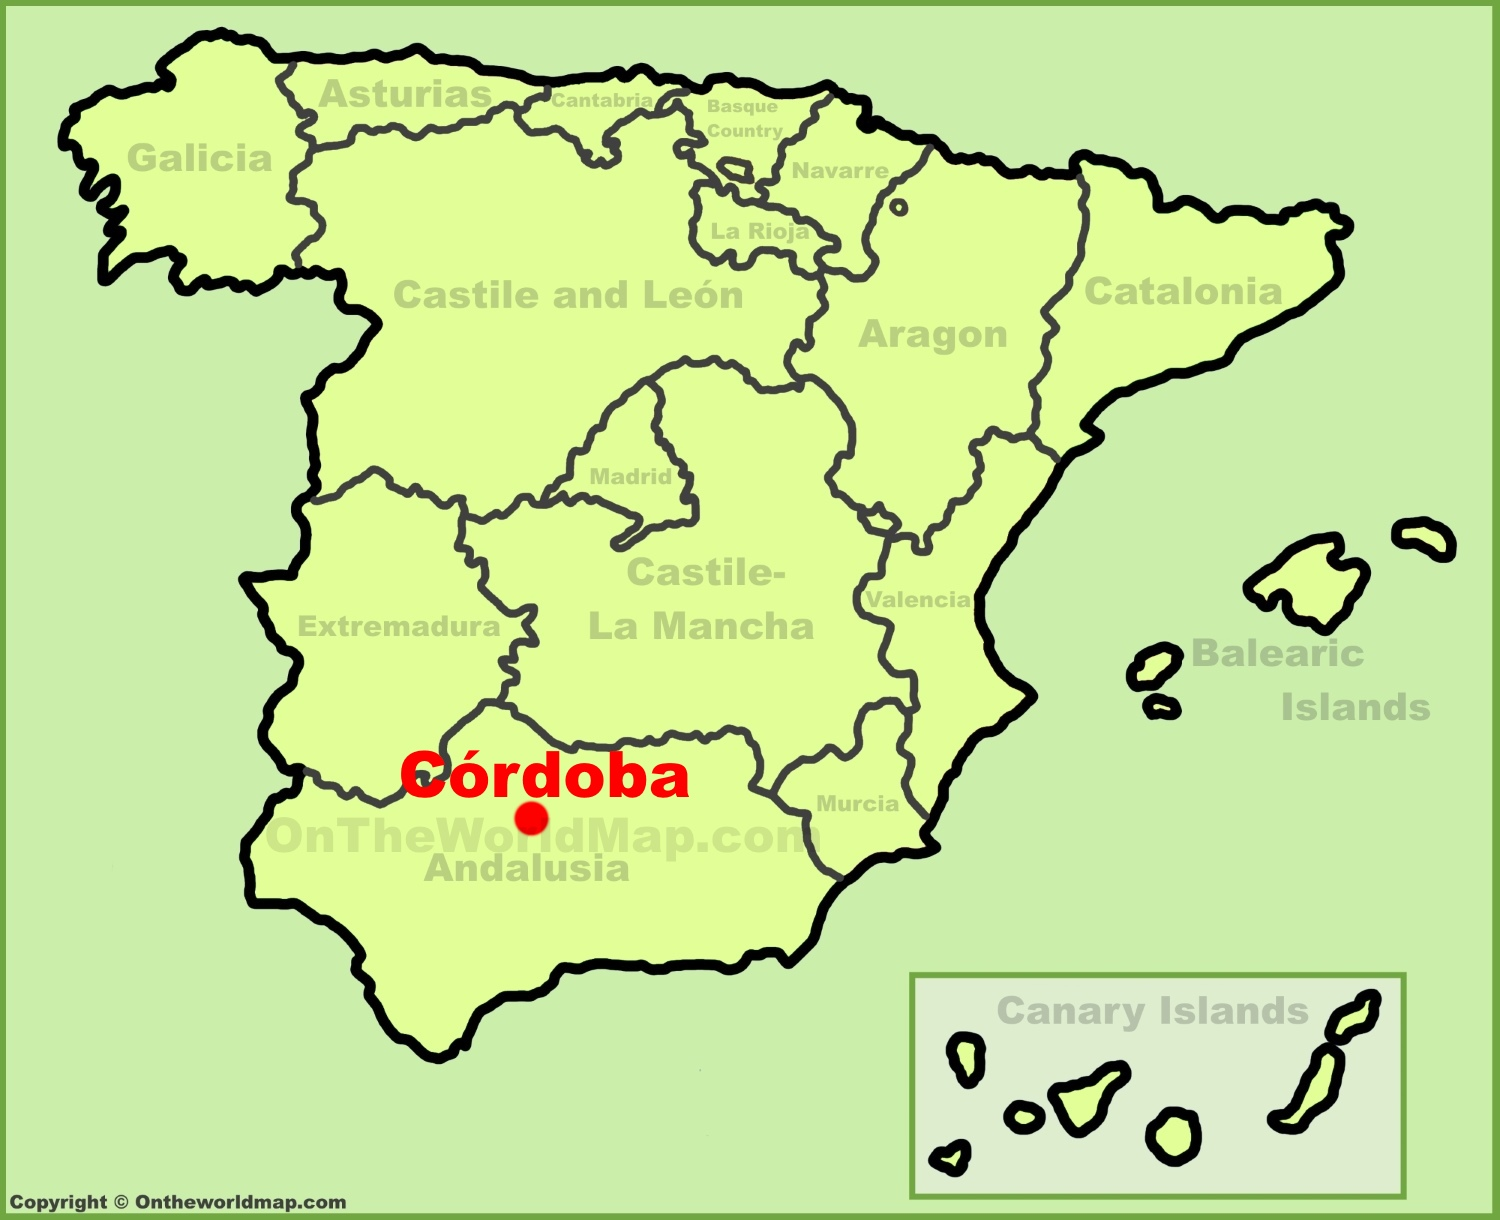 Cordoba location on the Spain map